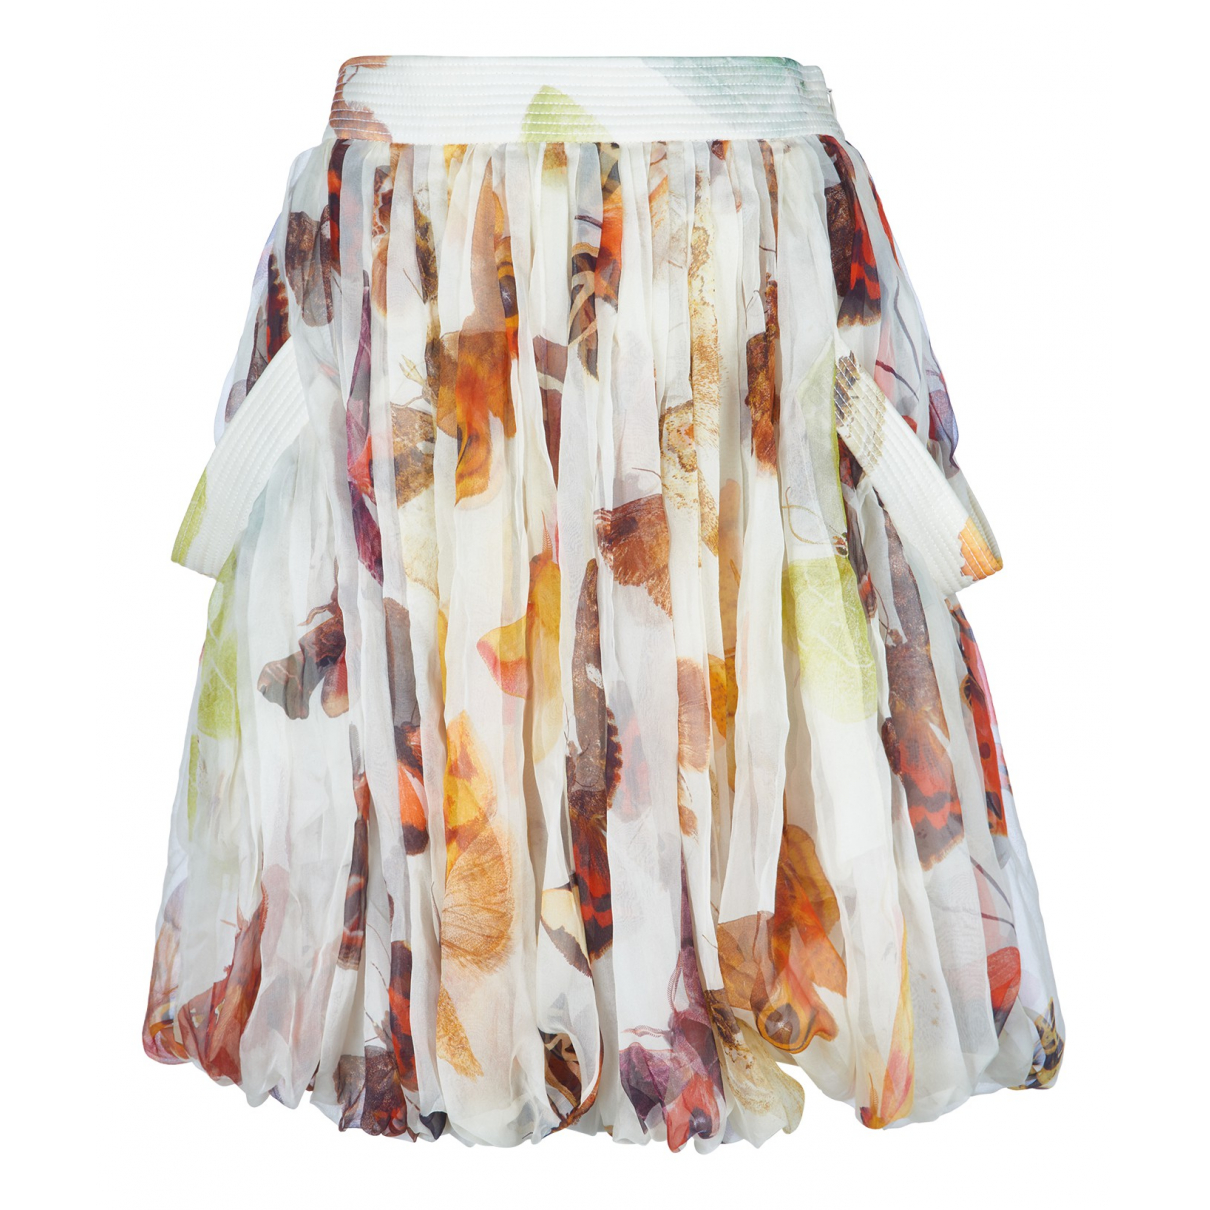 Alexander Mcqueen N Beige skirt for Women 6 UK